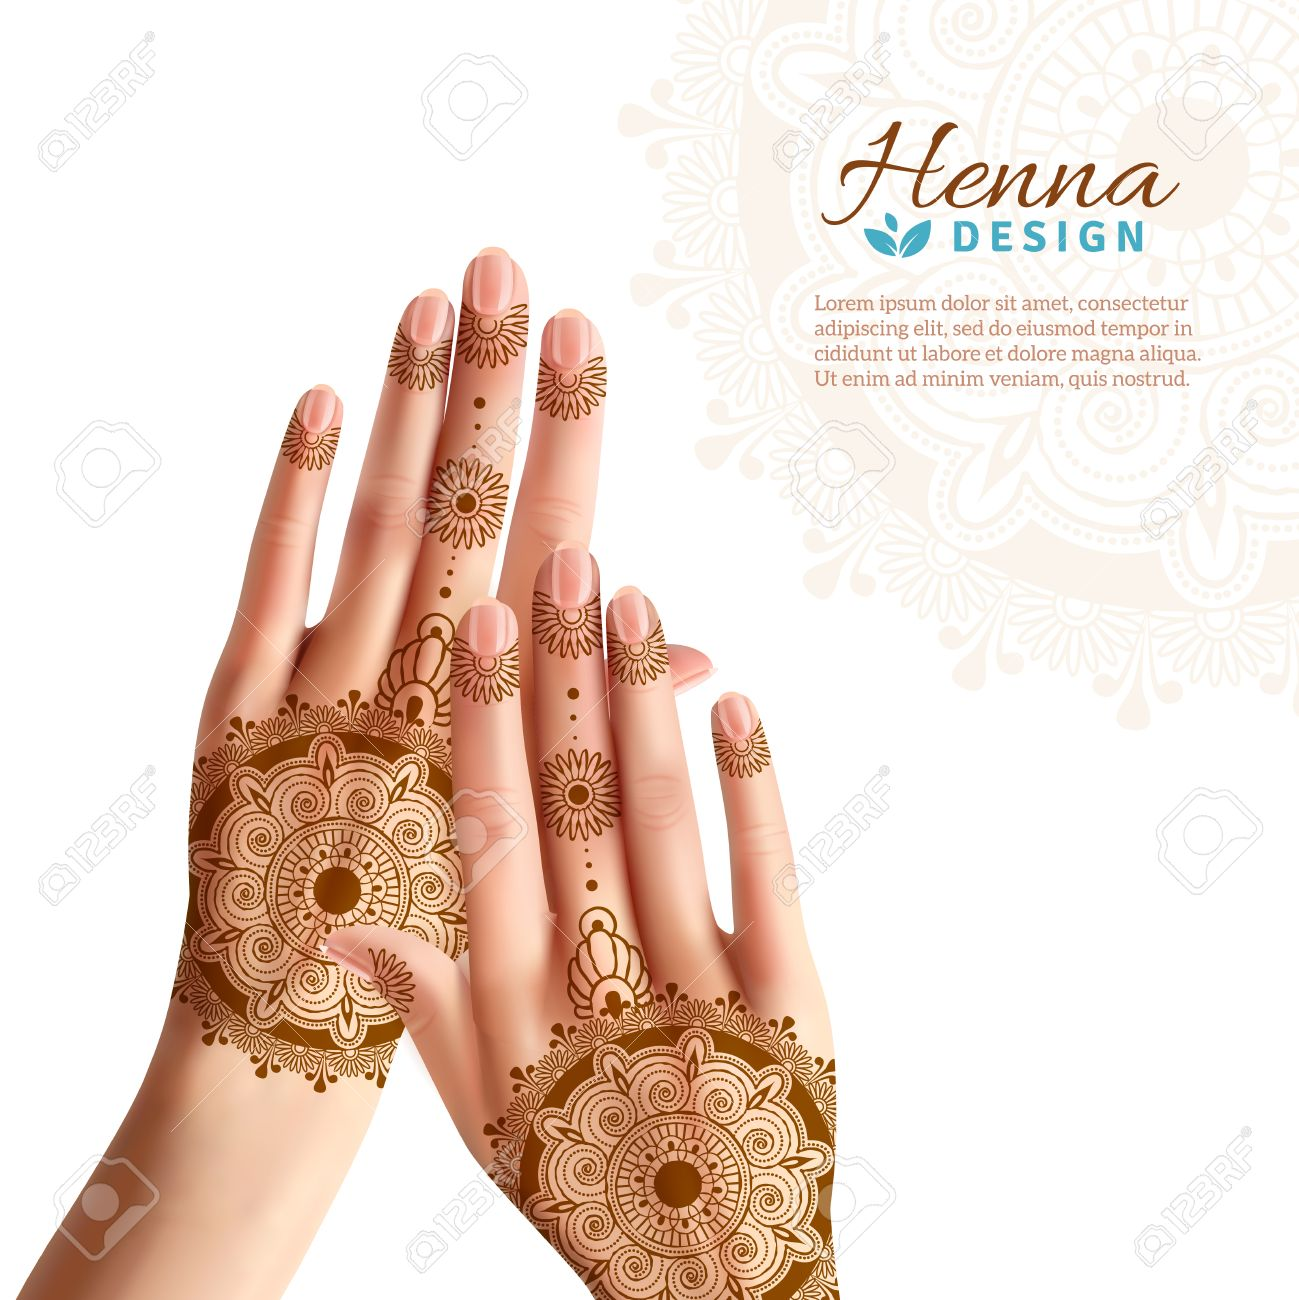 Women hands coloring with indian henna paste or mehndi design..